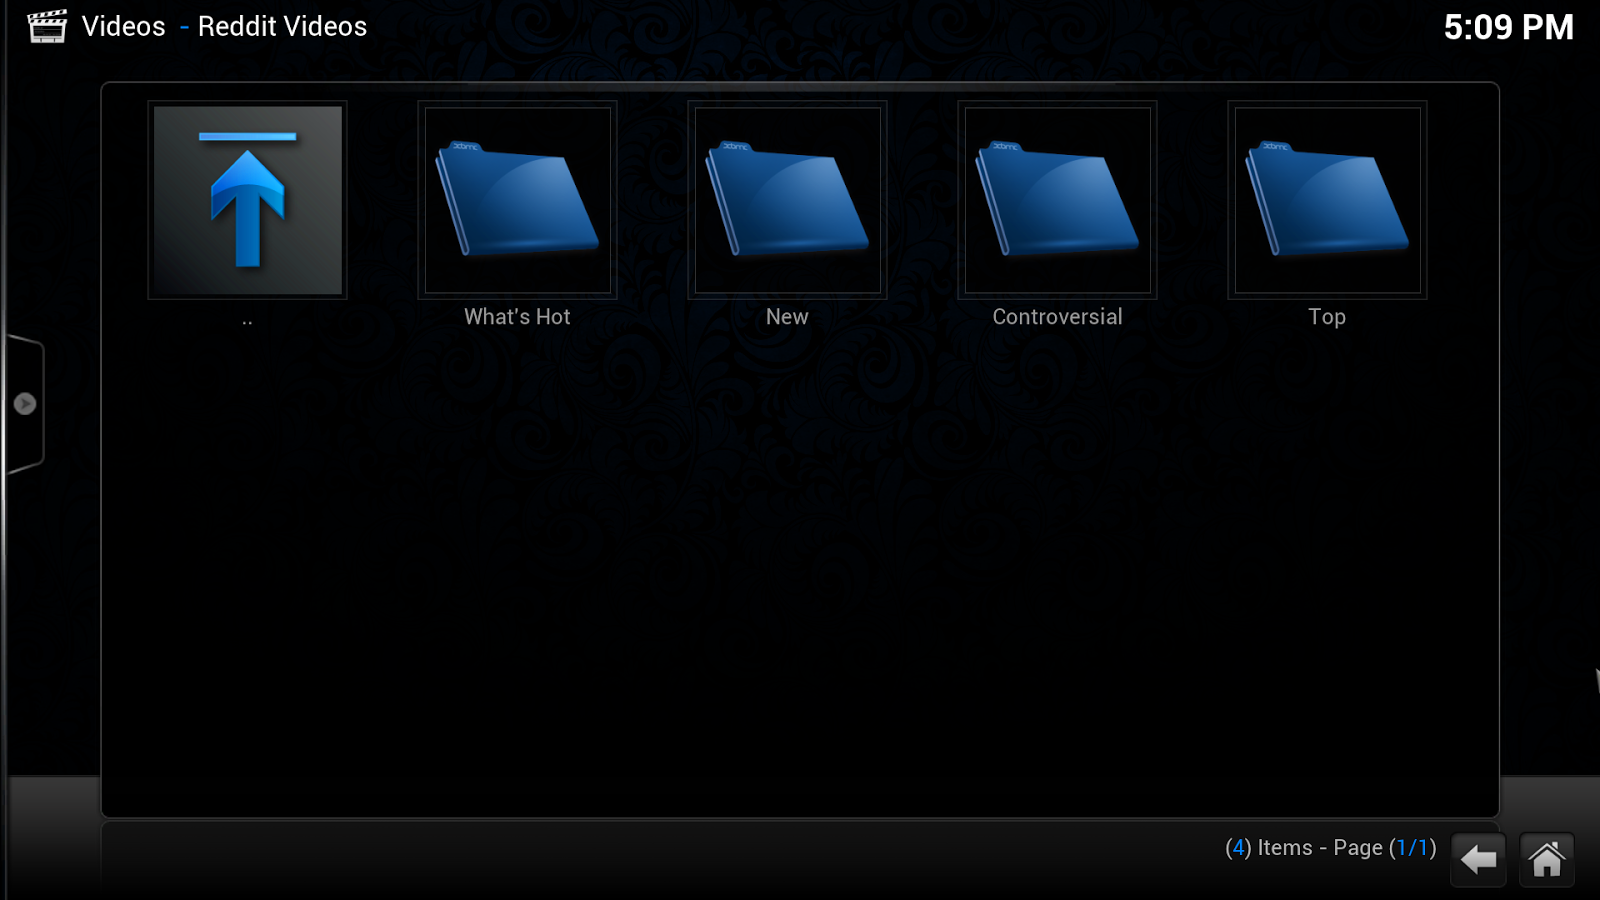 Reddit Videos Category Xbmc